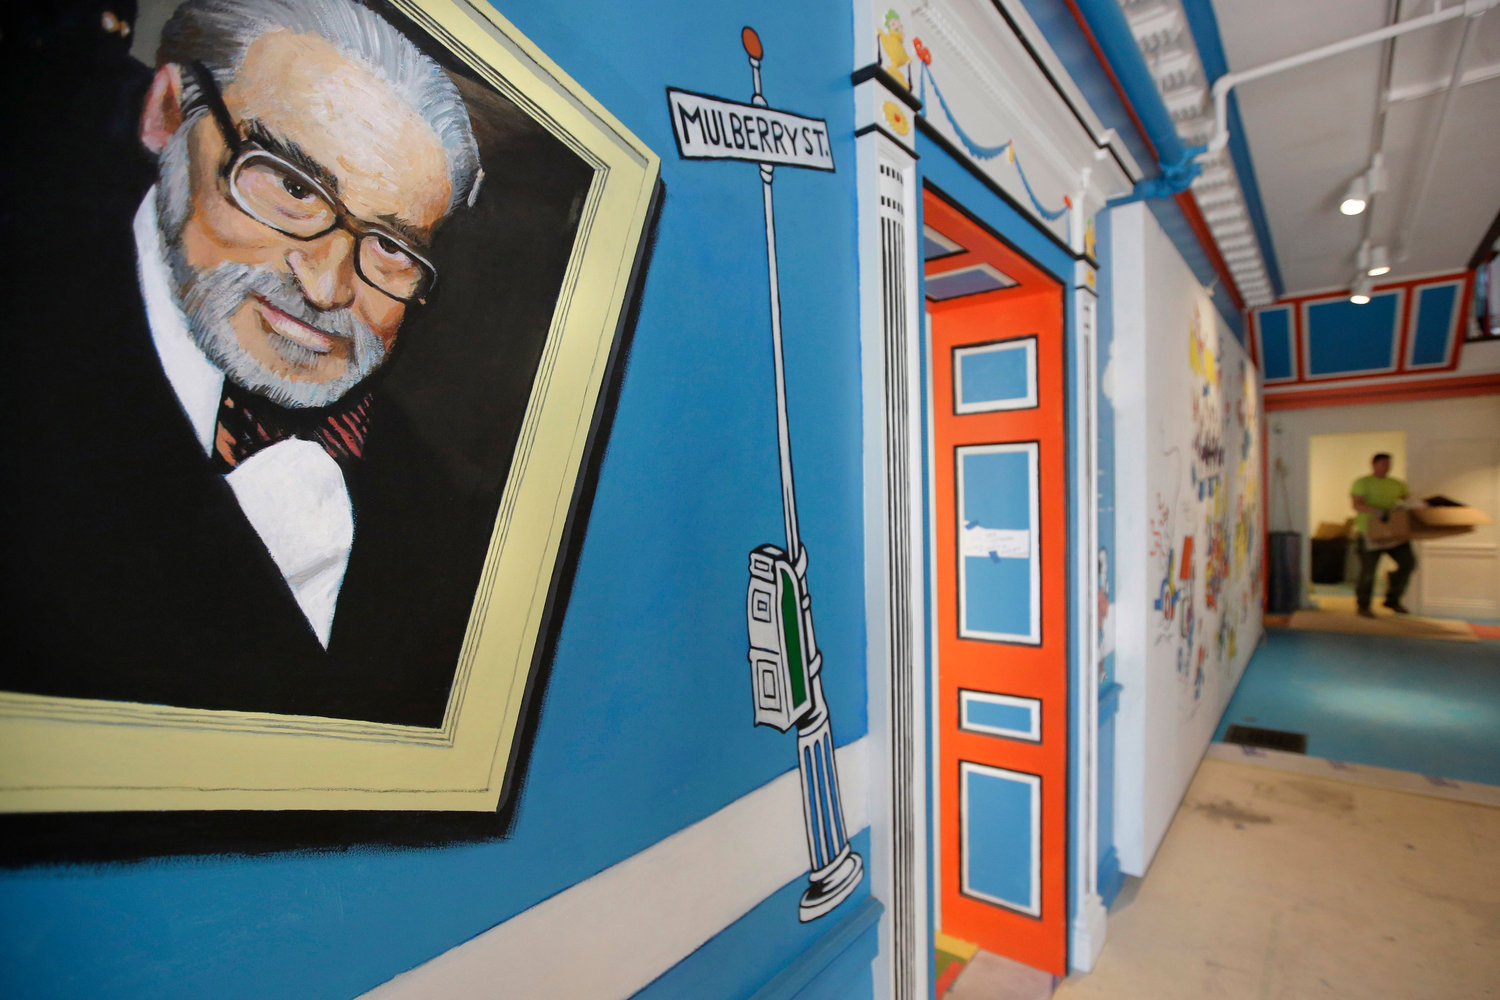 LEGACY — In this May 4, 2017, photo, a mural that features Theodor Seuss Geisel, left, also known by his pen name Dr. Seuss, covers part of a wall near an entrance at The Amazing World of Dr. Seuss Museum, in Springfield, Mass.